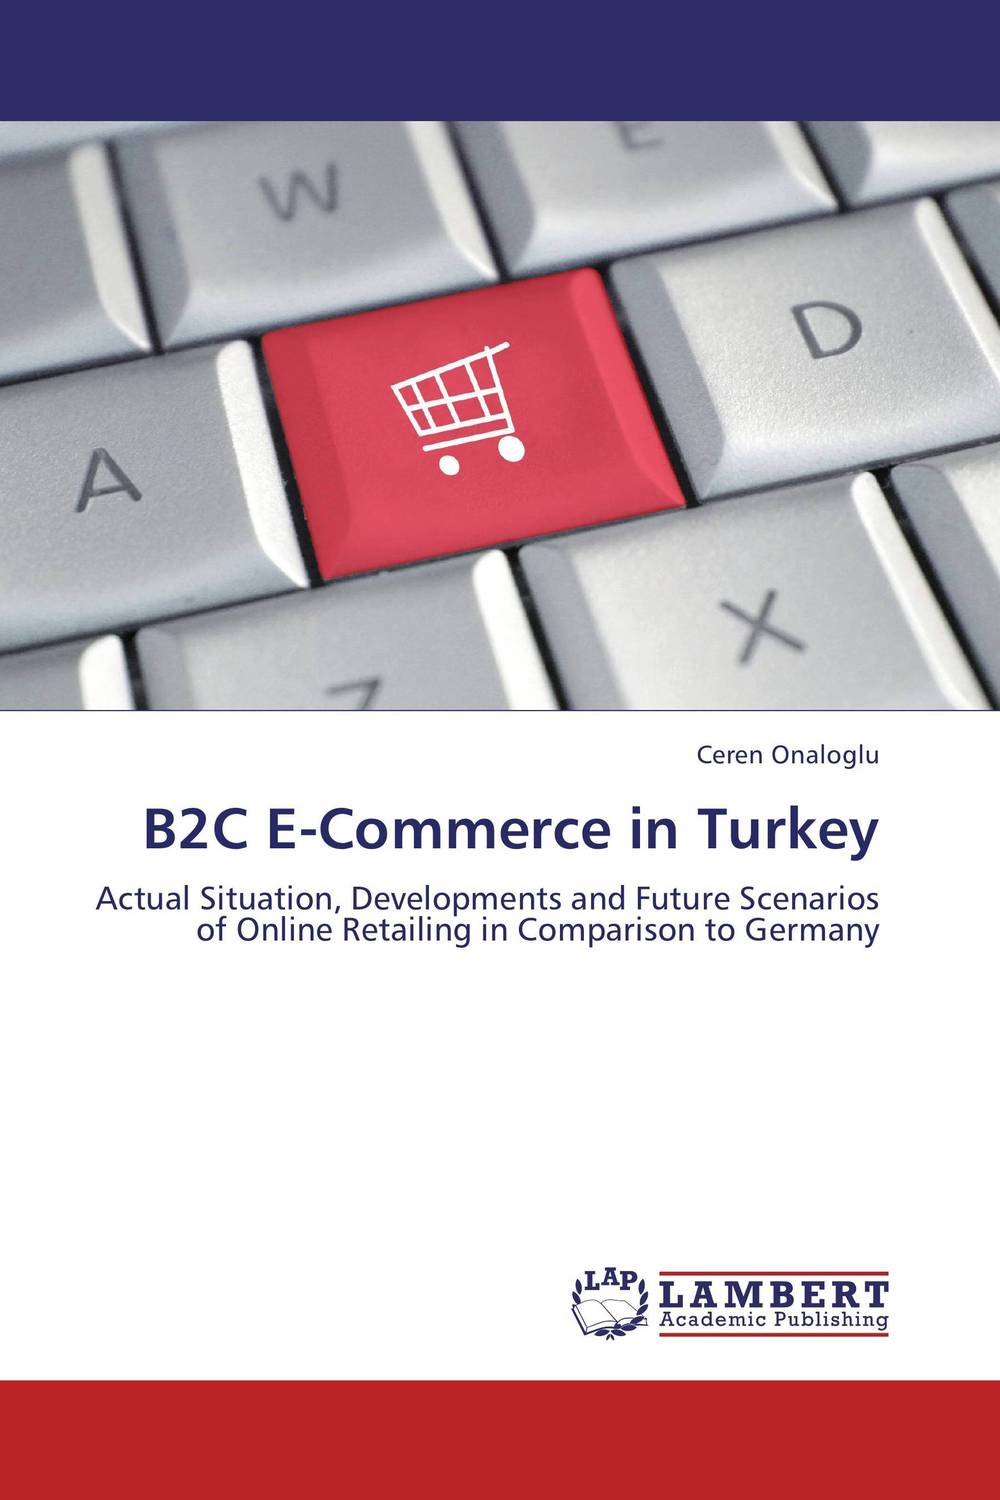 B2C E-Commerce in Turkey